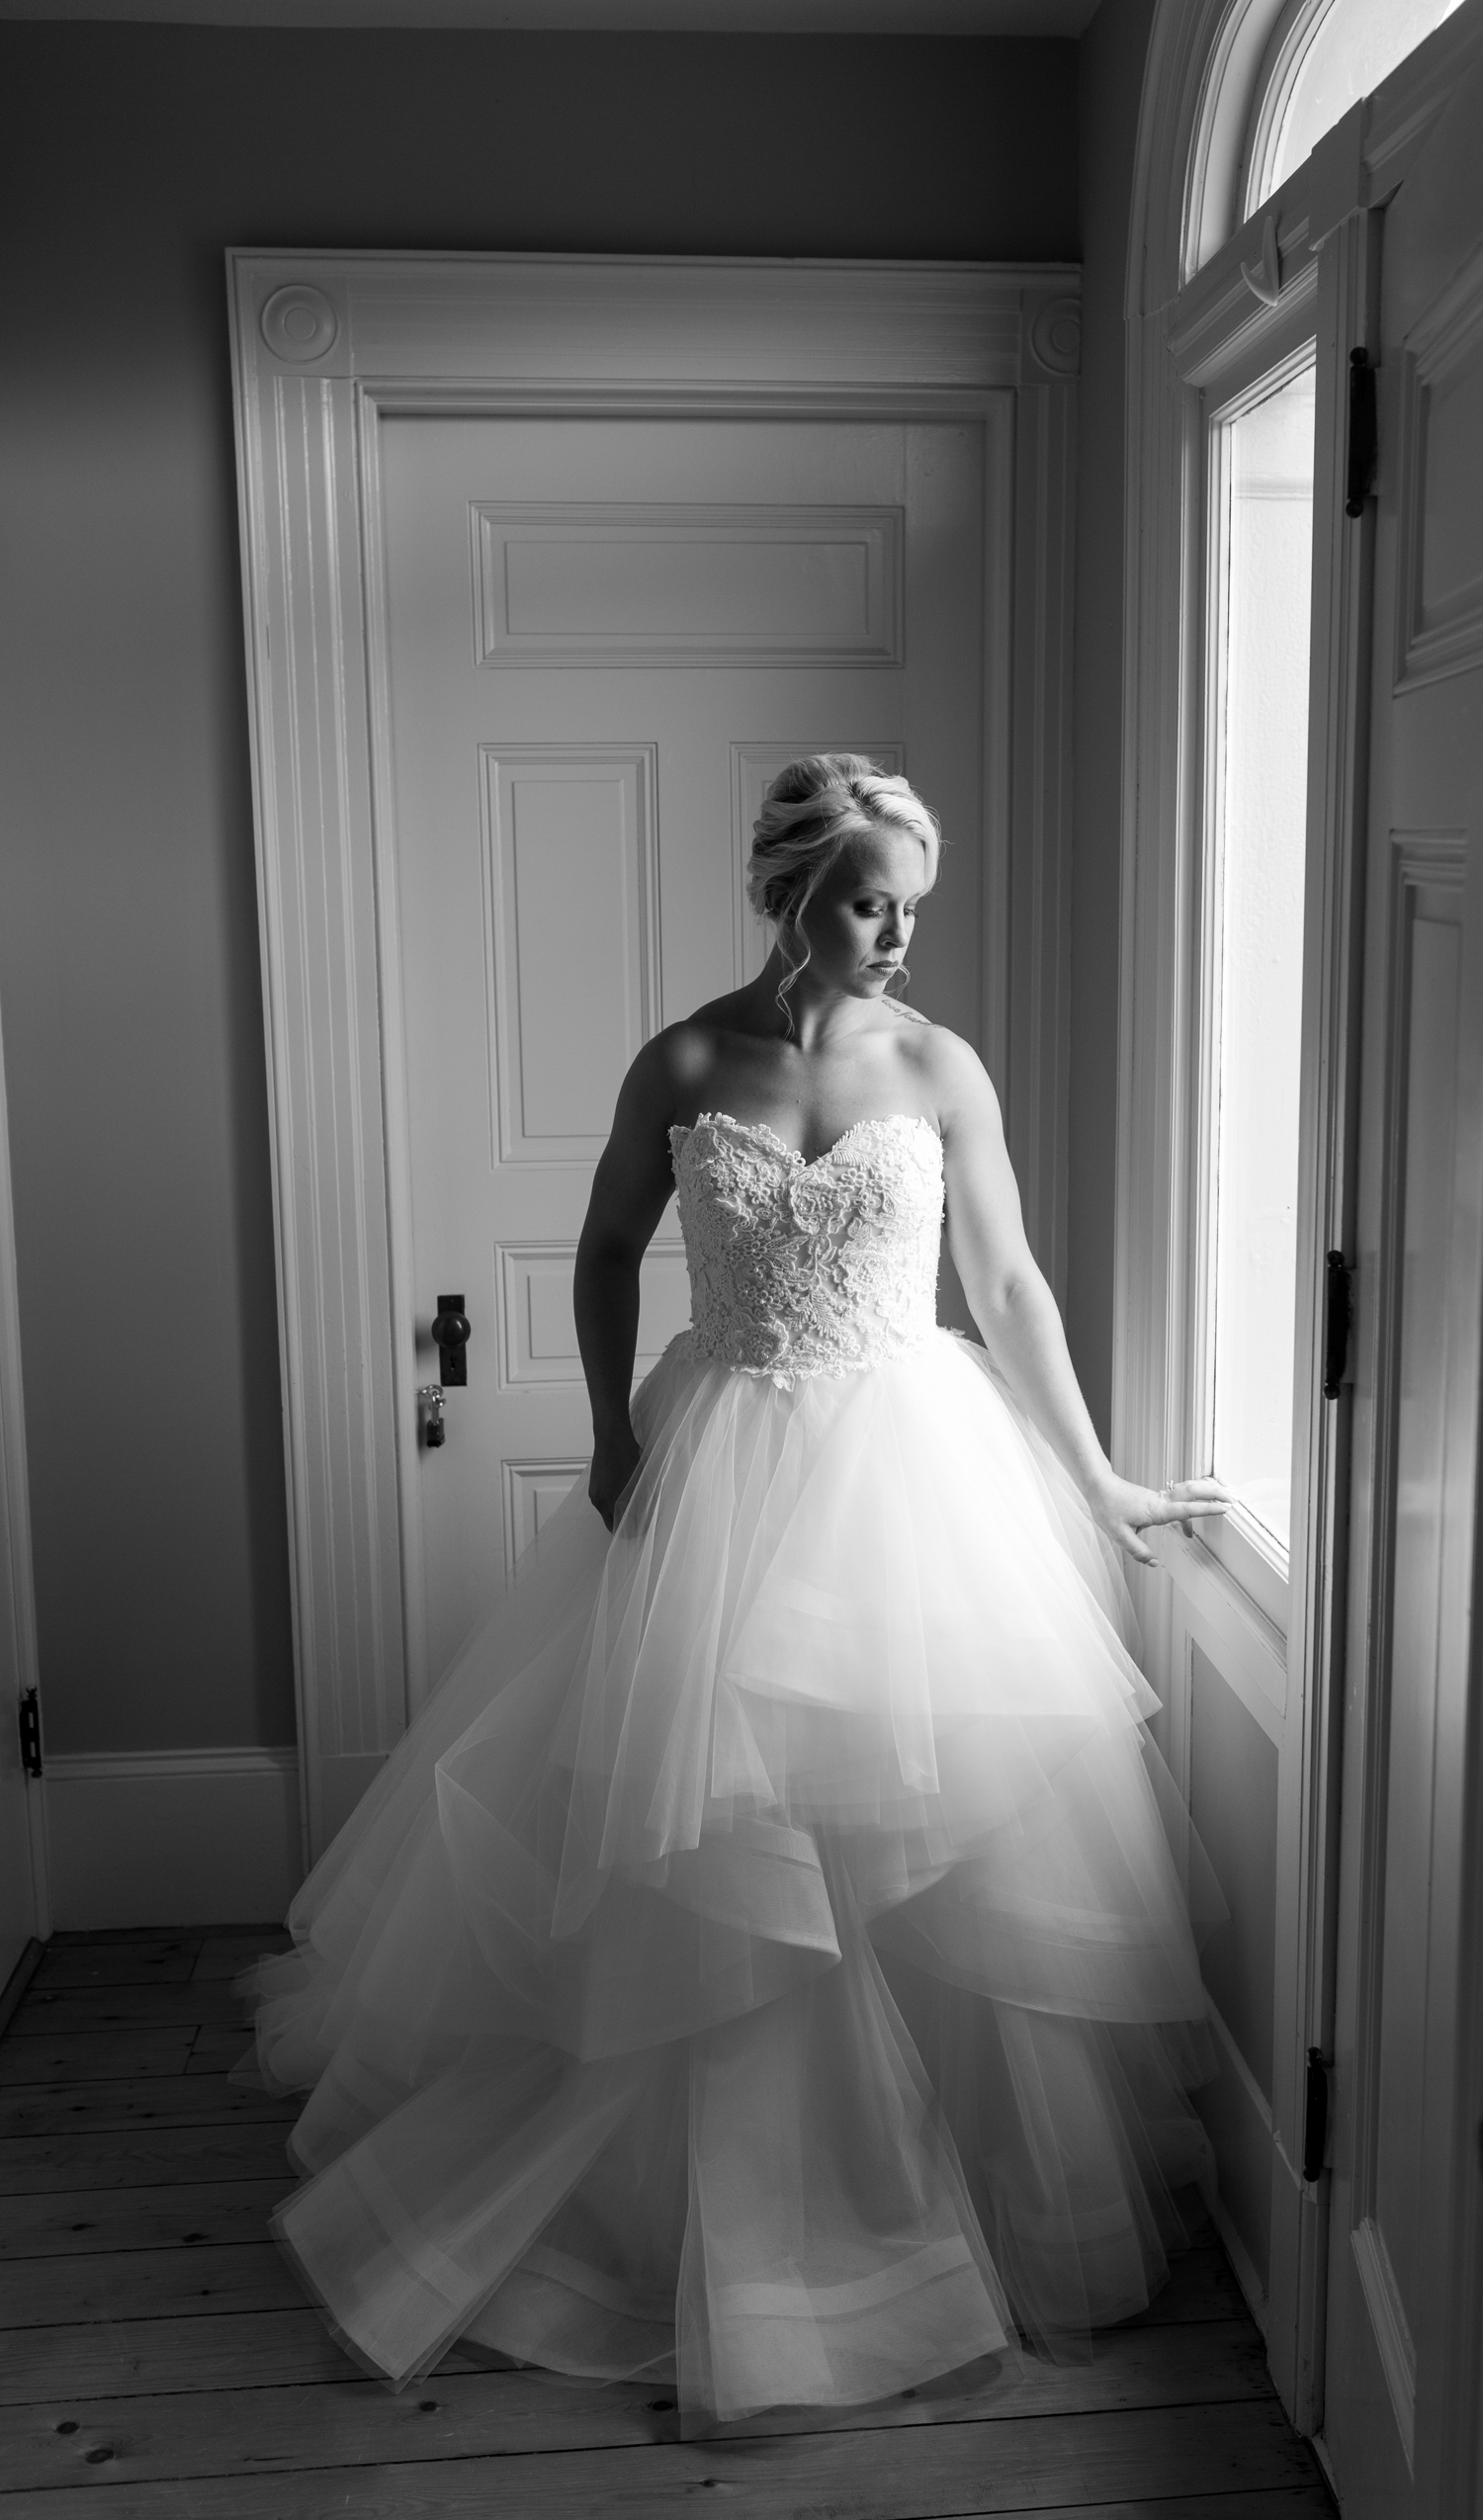 One of my all time favorite bridal portraits! Heather you are breathtaking!!!